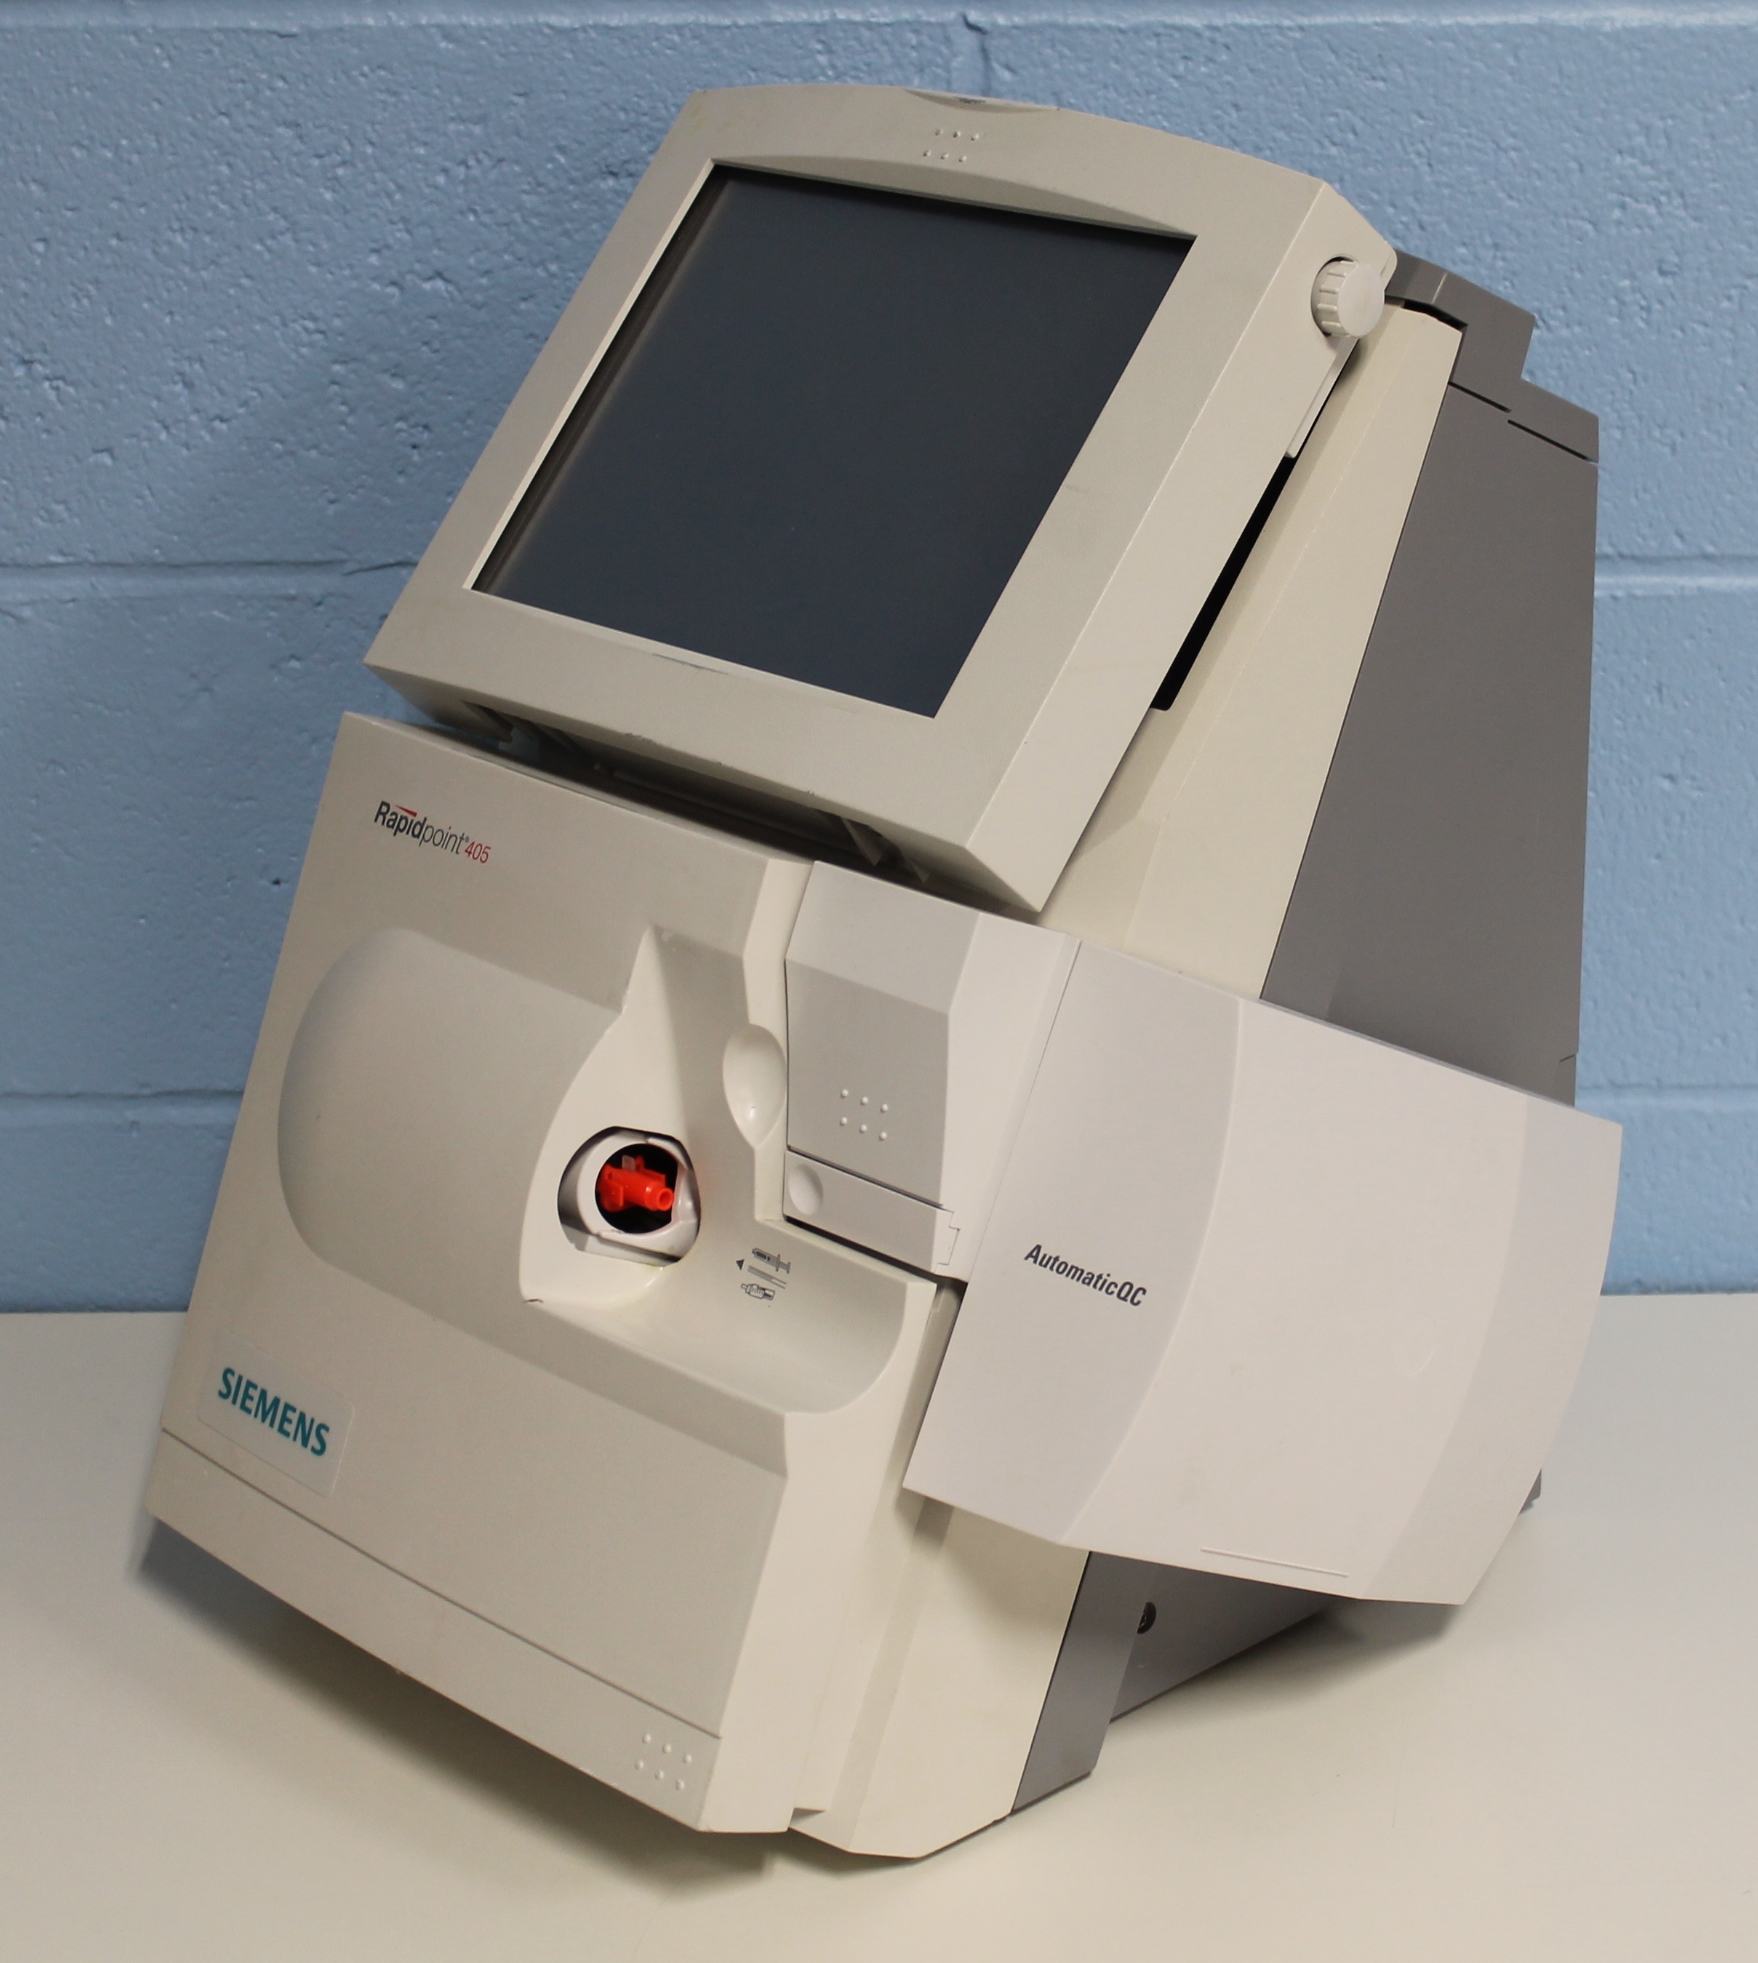 ... Siemens RAPIDPoint 405 Blood Gas Analyzer System Image